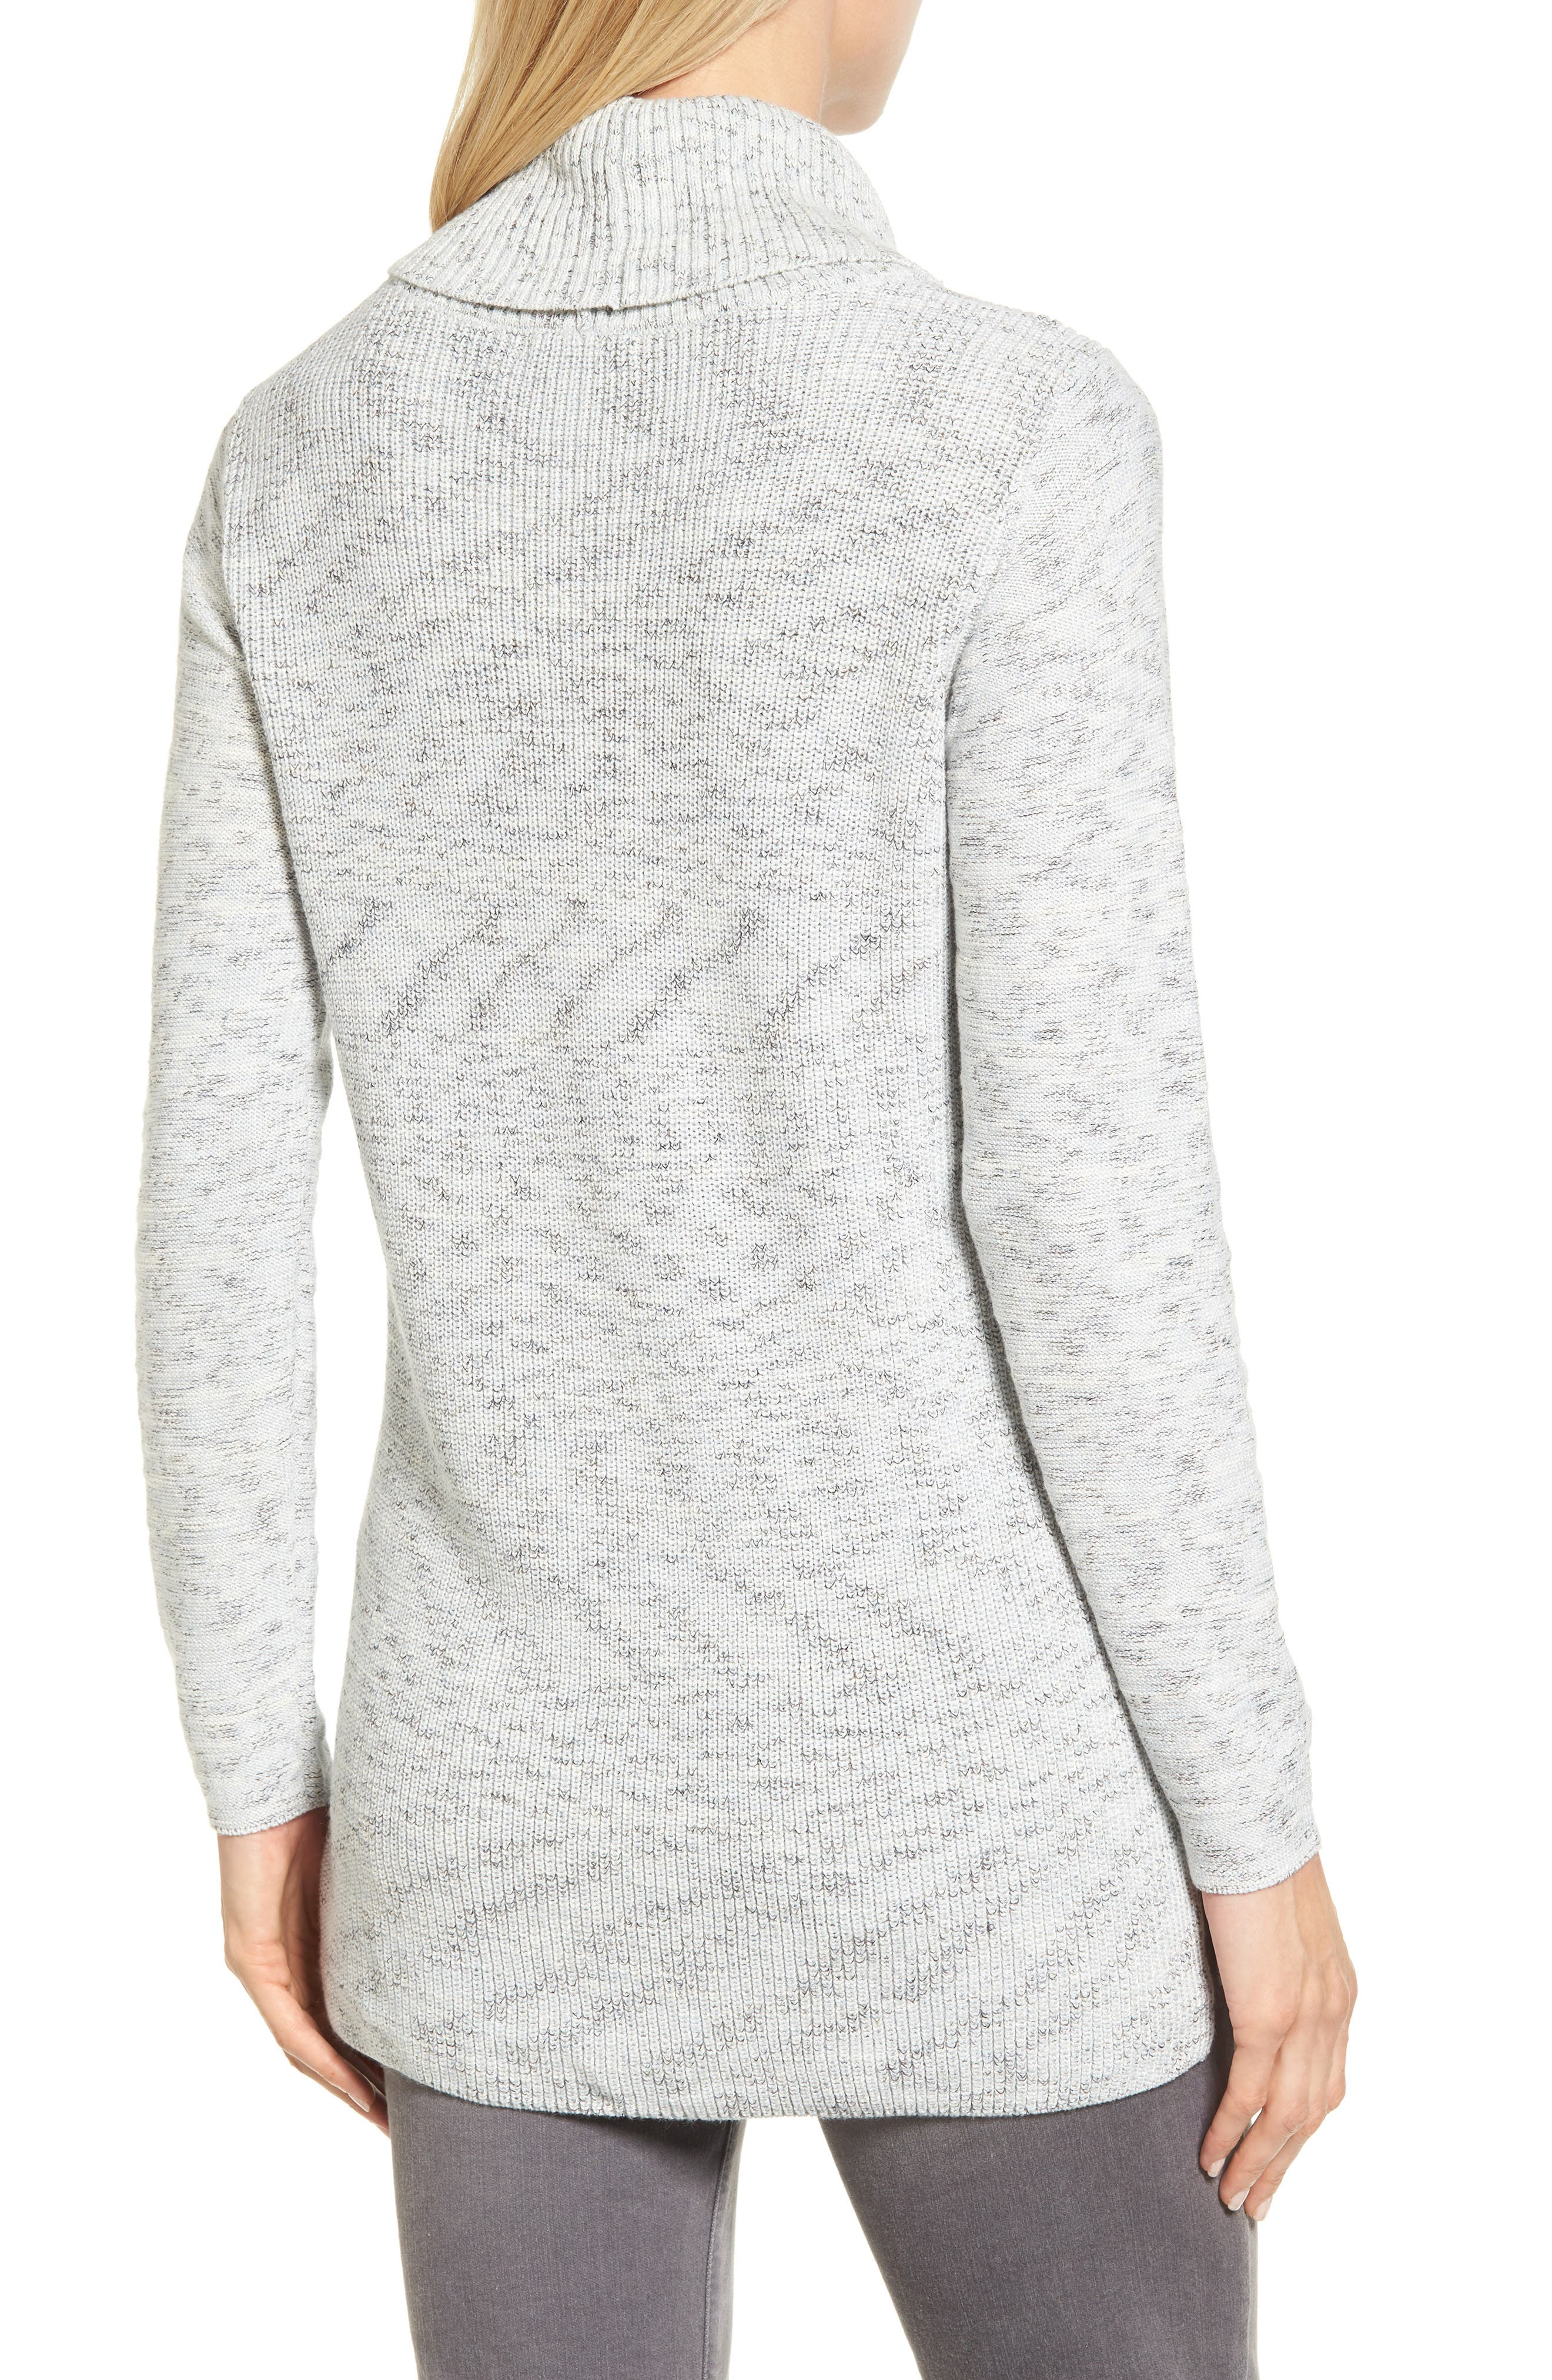 North Star Turtleneck Tunic,                             Alternate thumbnail 5, color,